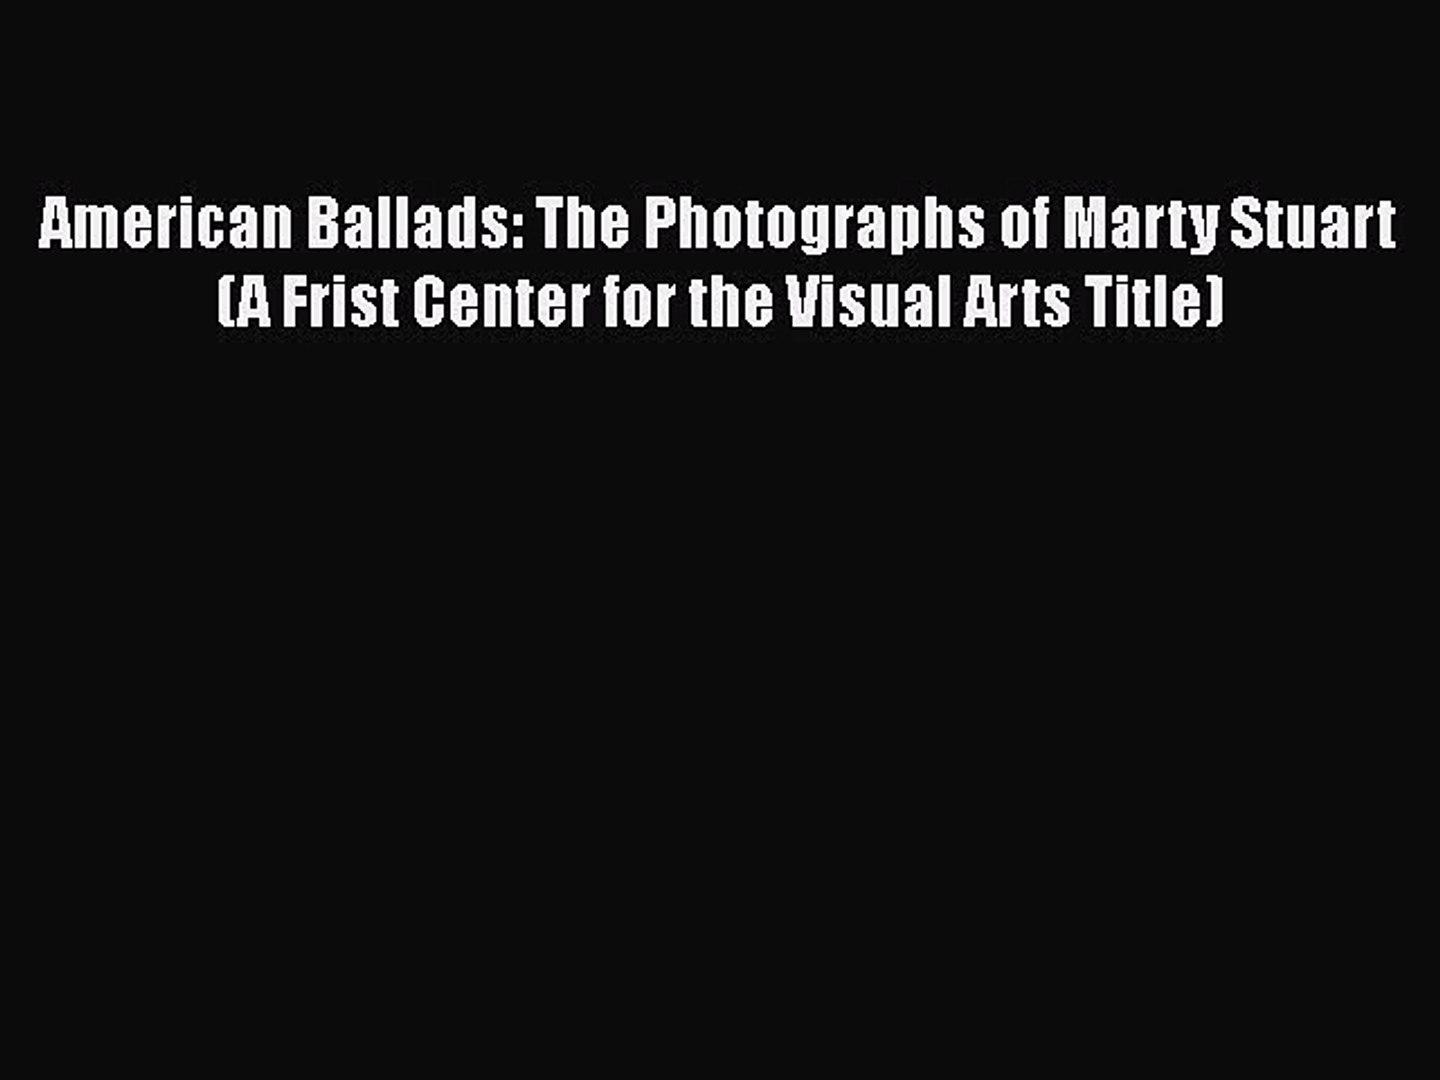 [PDF] American Ballads: The Photographs of Marty Stuart (A Frist Center for the Visual Arts